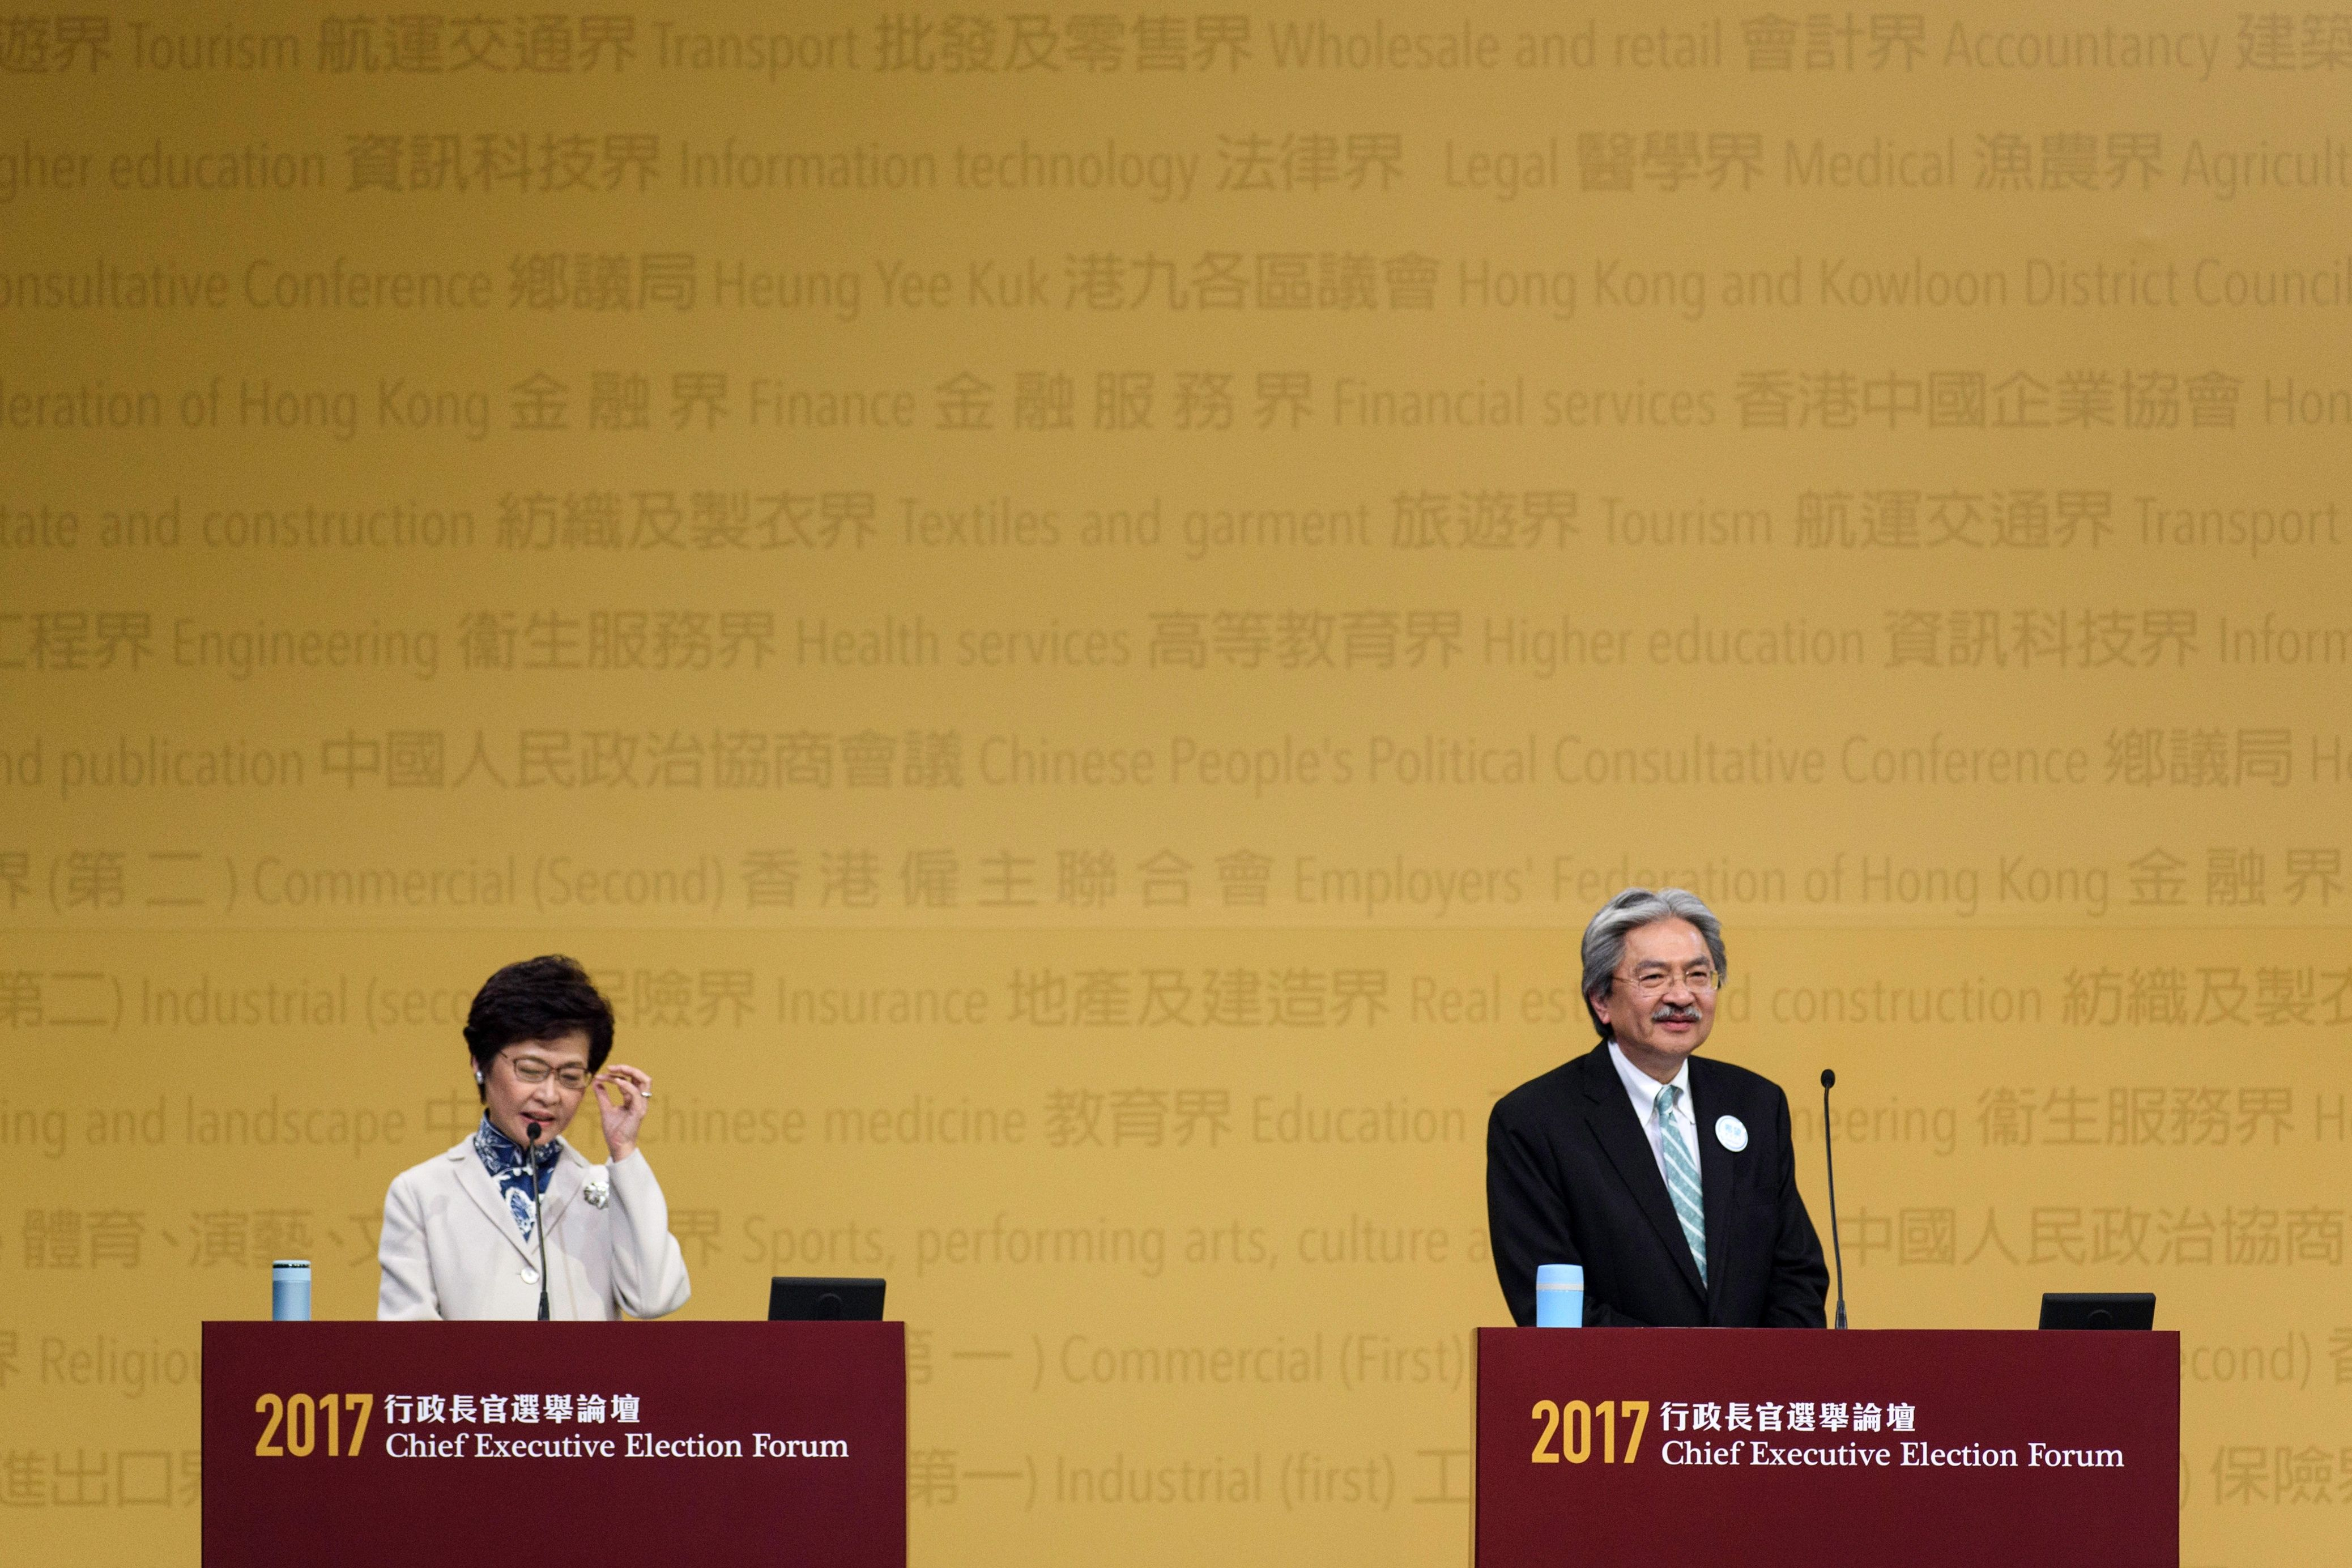 Hong Kong's Chief Executive candidates Carrie Lam and John Tsang on stage during the Chief Executive Election Forum in Hong Kong on March 19, 2017